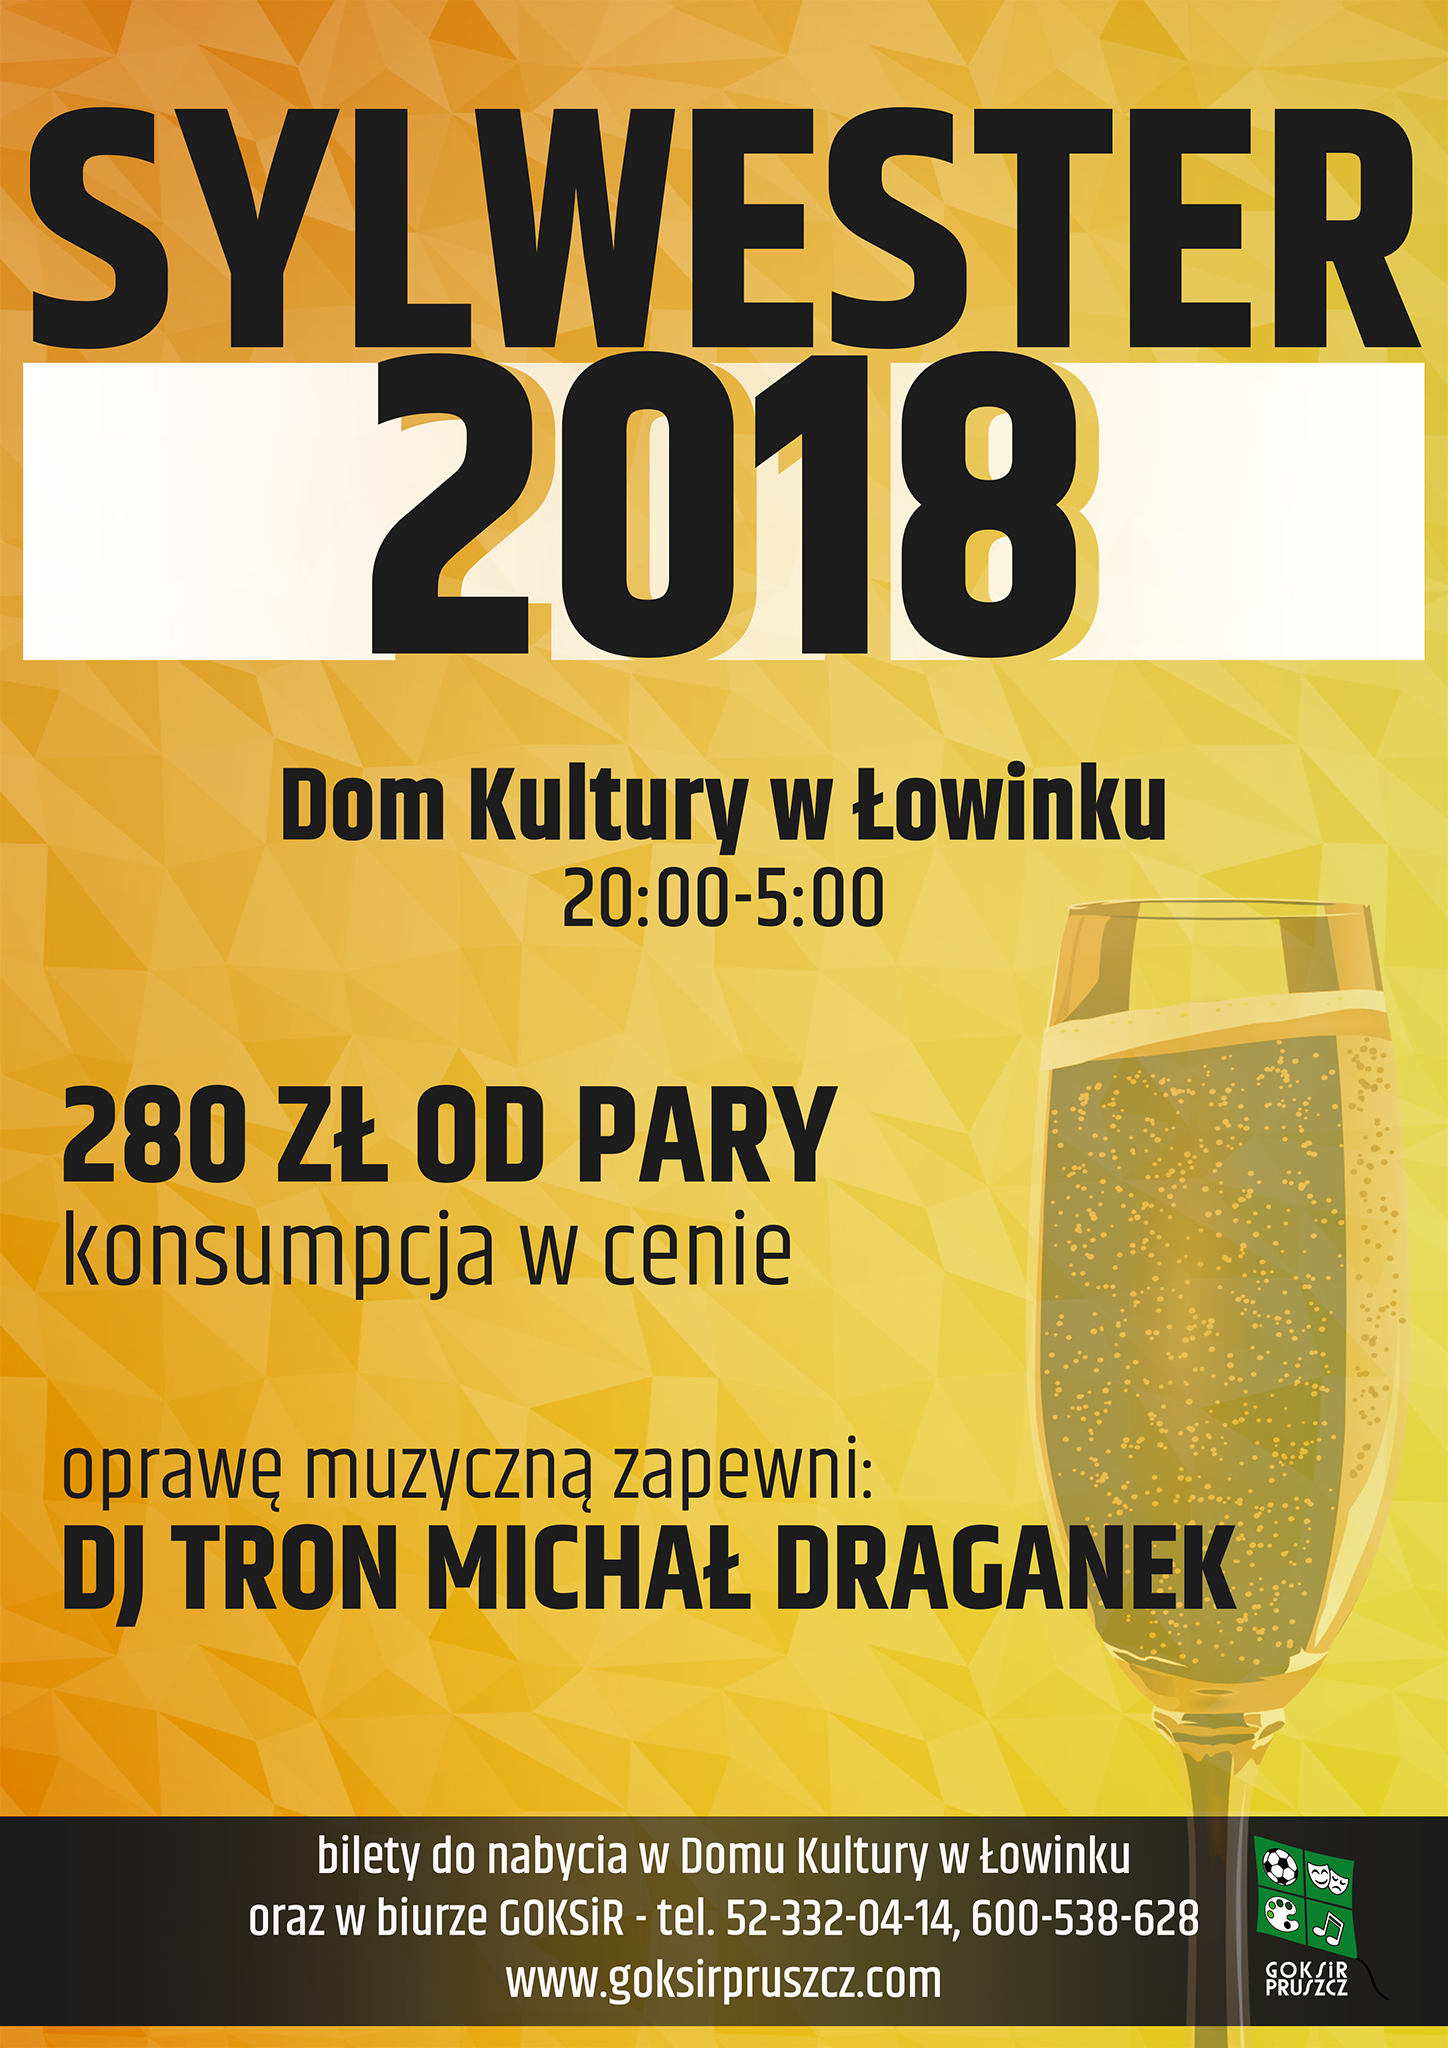 Sylwester-2018-ŁOWINEK---do-internetu